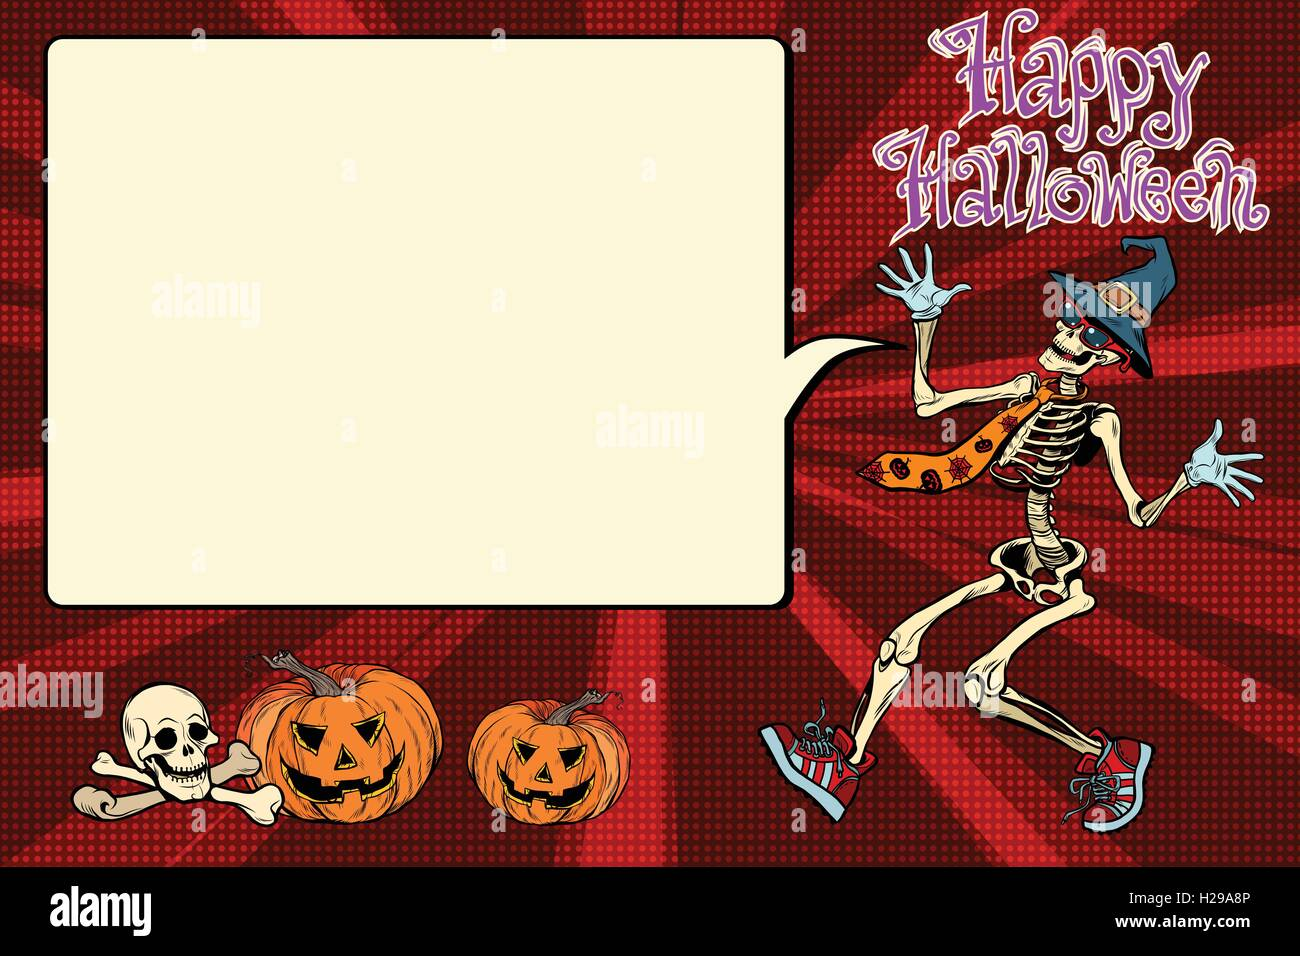 Happy Halloween funny skeleton invites you to a party - Stock Vector